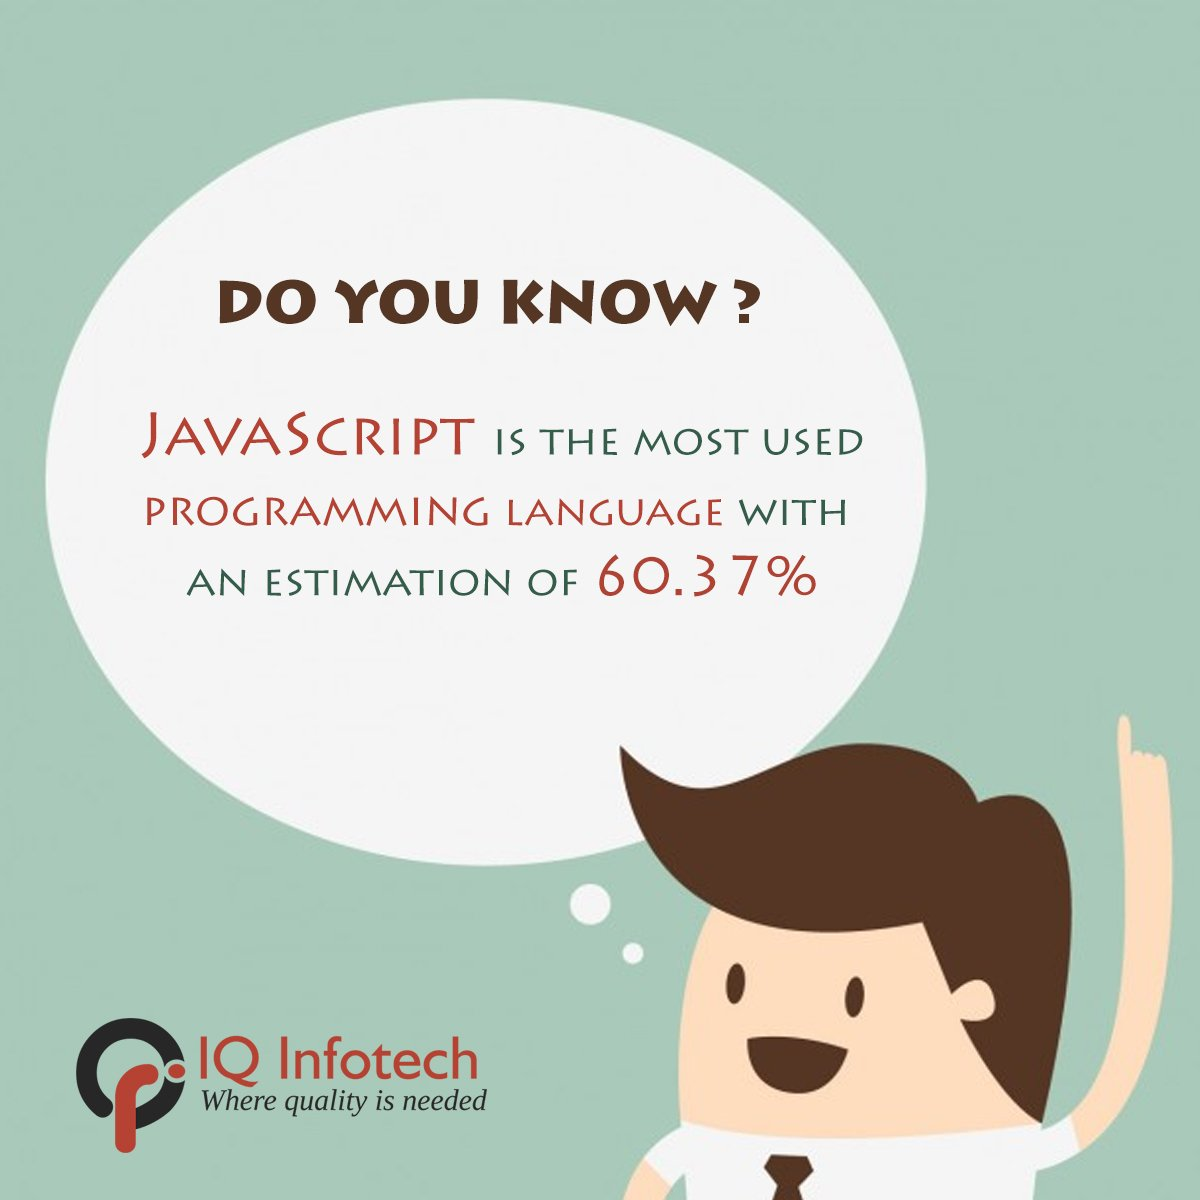 What The Fact !!!  #Quotes #doyouknow #didyouknow #whatthefact #IQInfotech #IQInfotechIndia #IQInfotechUSA #javascript #programming #codes #language #software